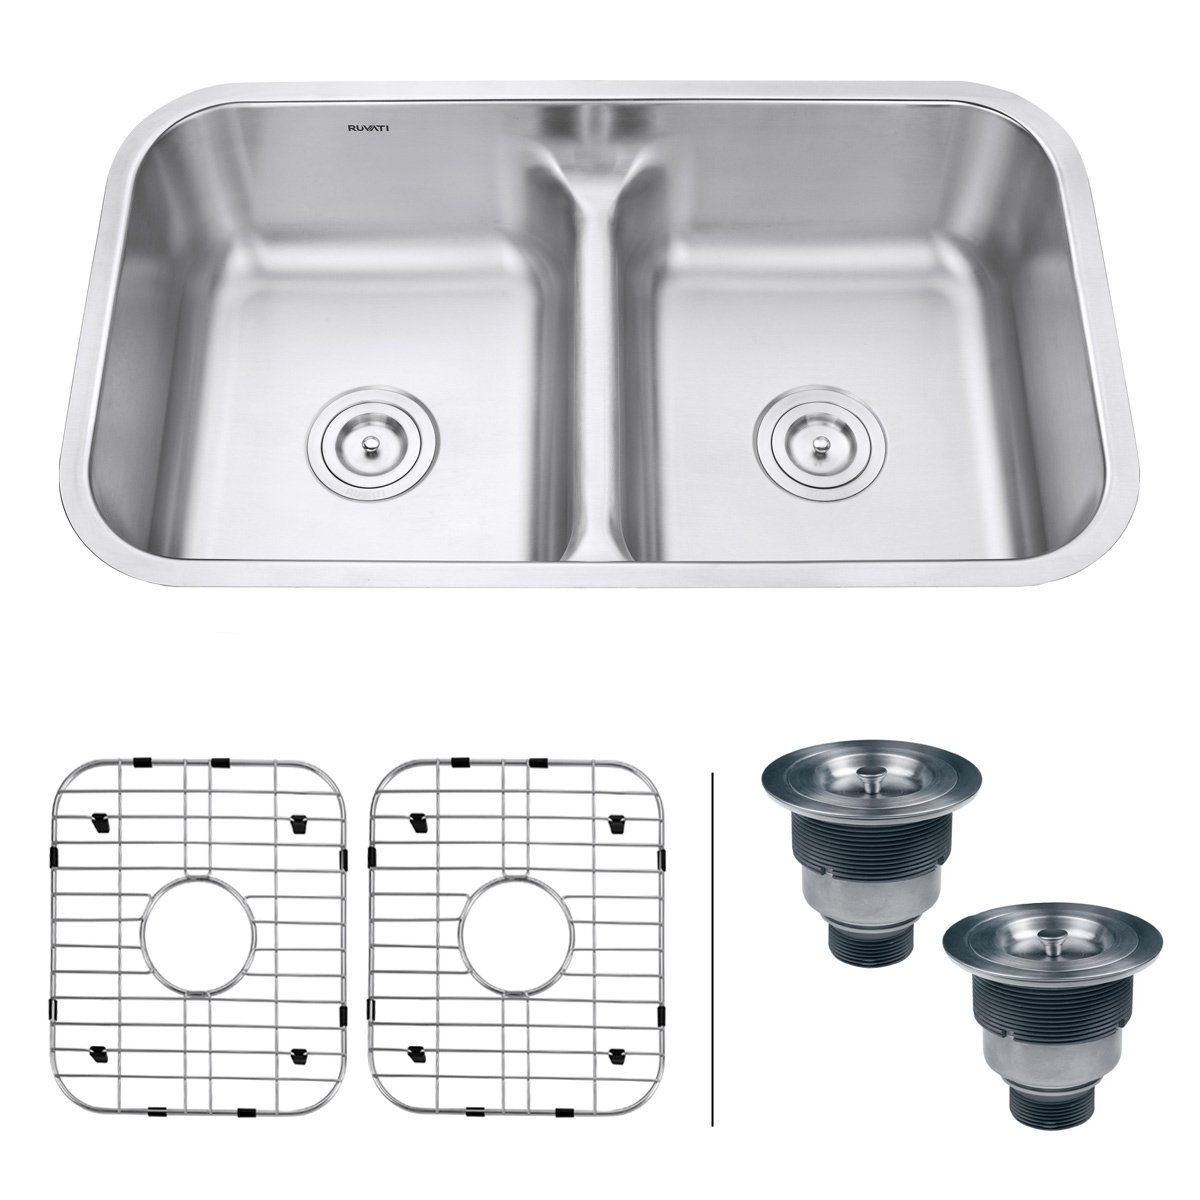 Ruvati 32-inch Low-Divide 50 50 Double Bowl Undermount 16 Gauge Stainless Steel Kitchen Sink RVM4350